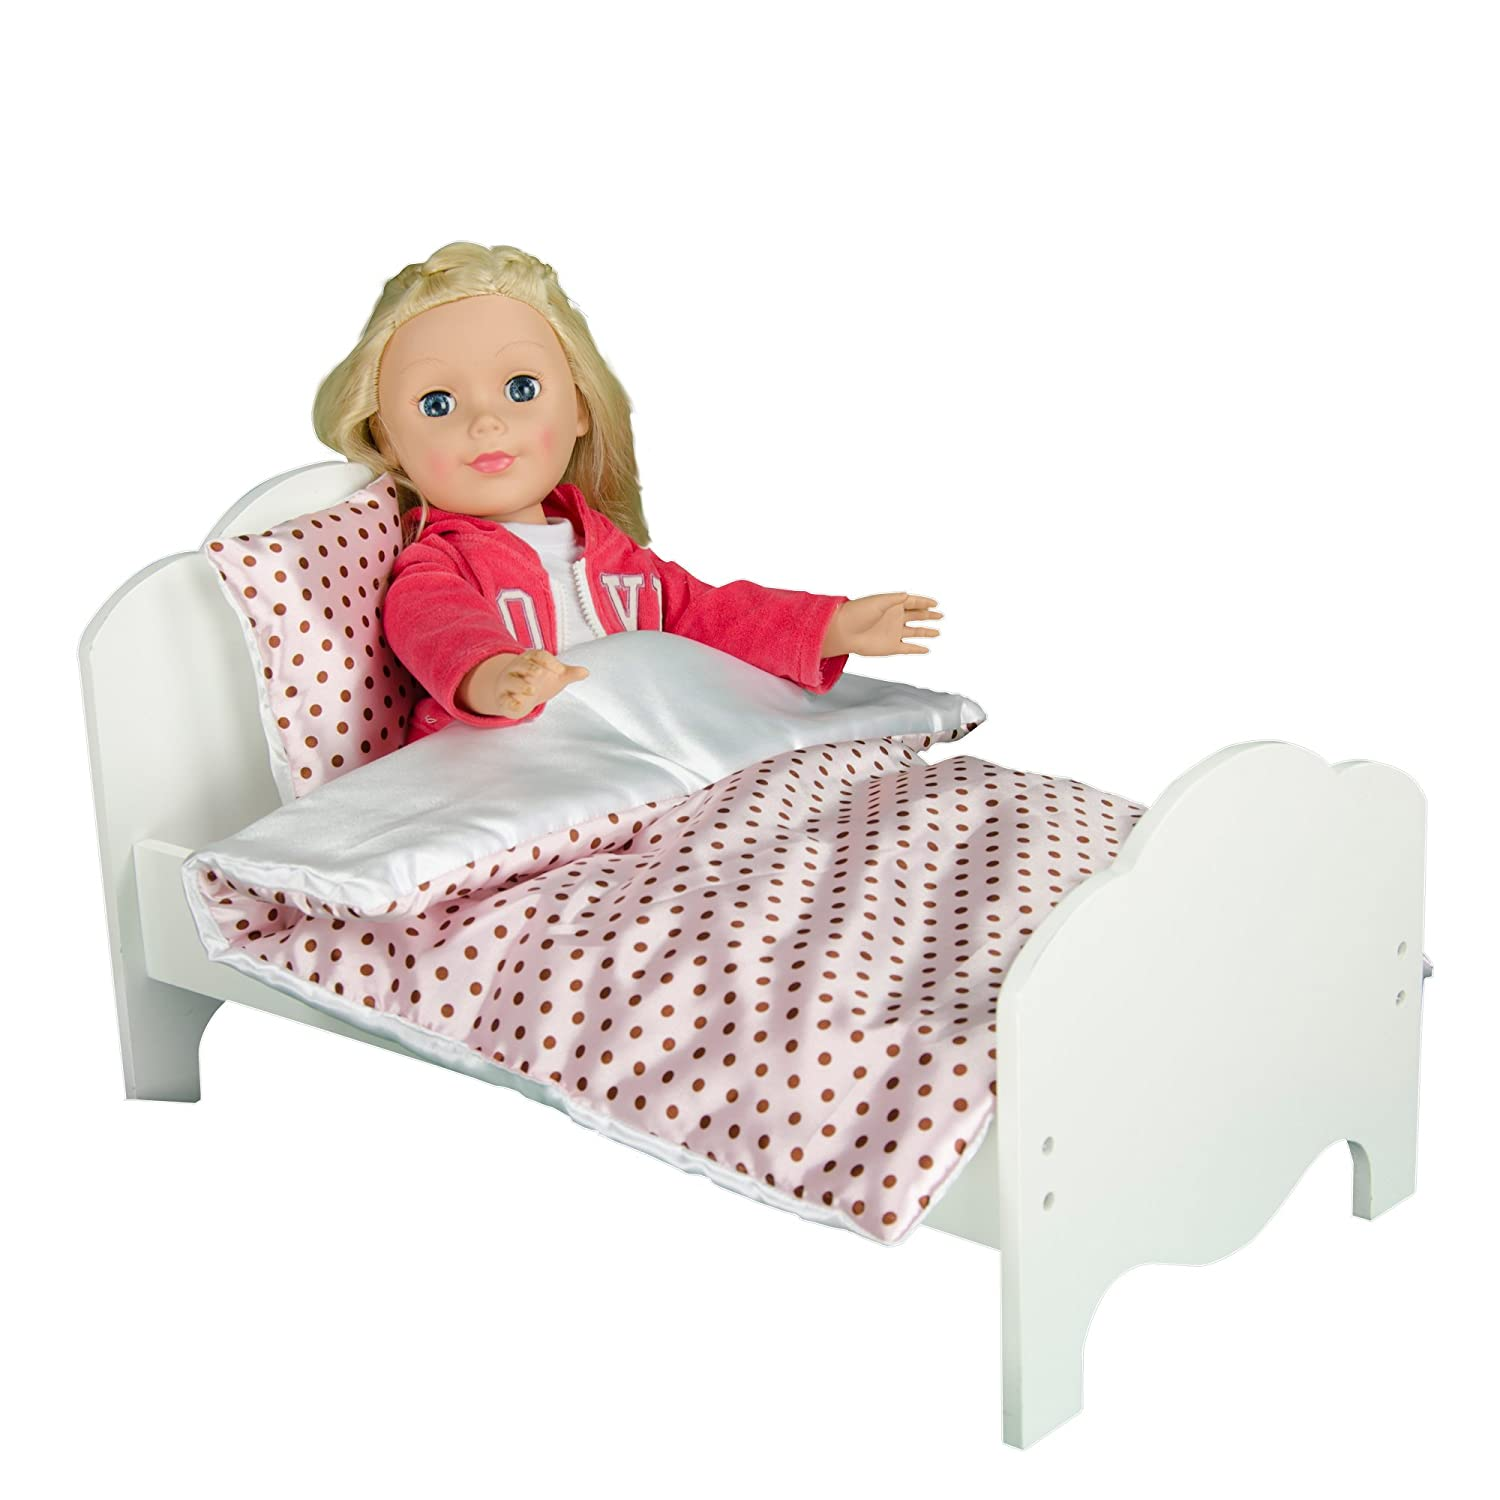 Olivia's Little World - Princess Classic Single Bed | Wooden 18 inch Doll Furniture